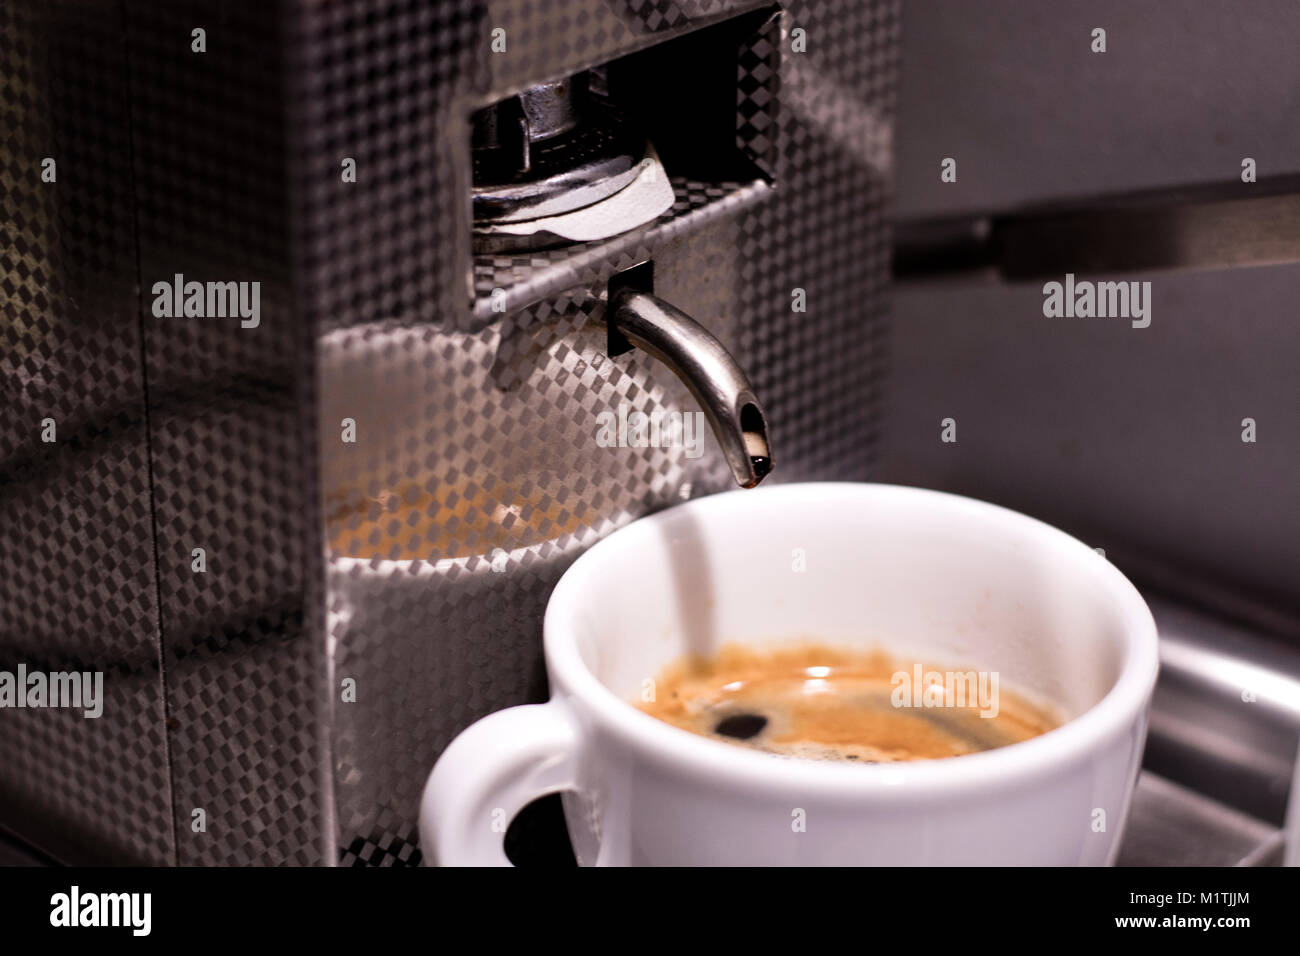 White cup of coffee with coffee maker - Stock Image